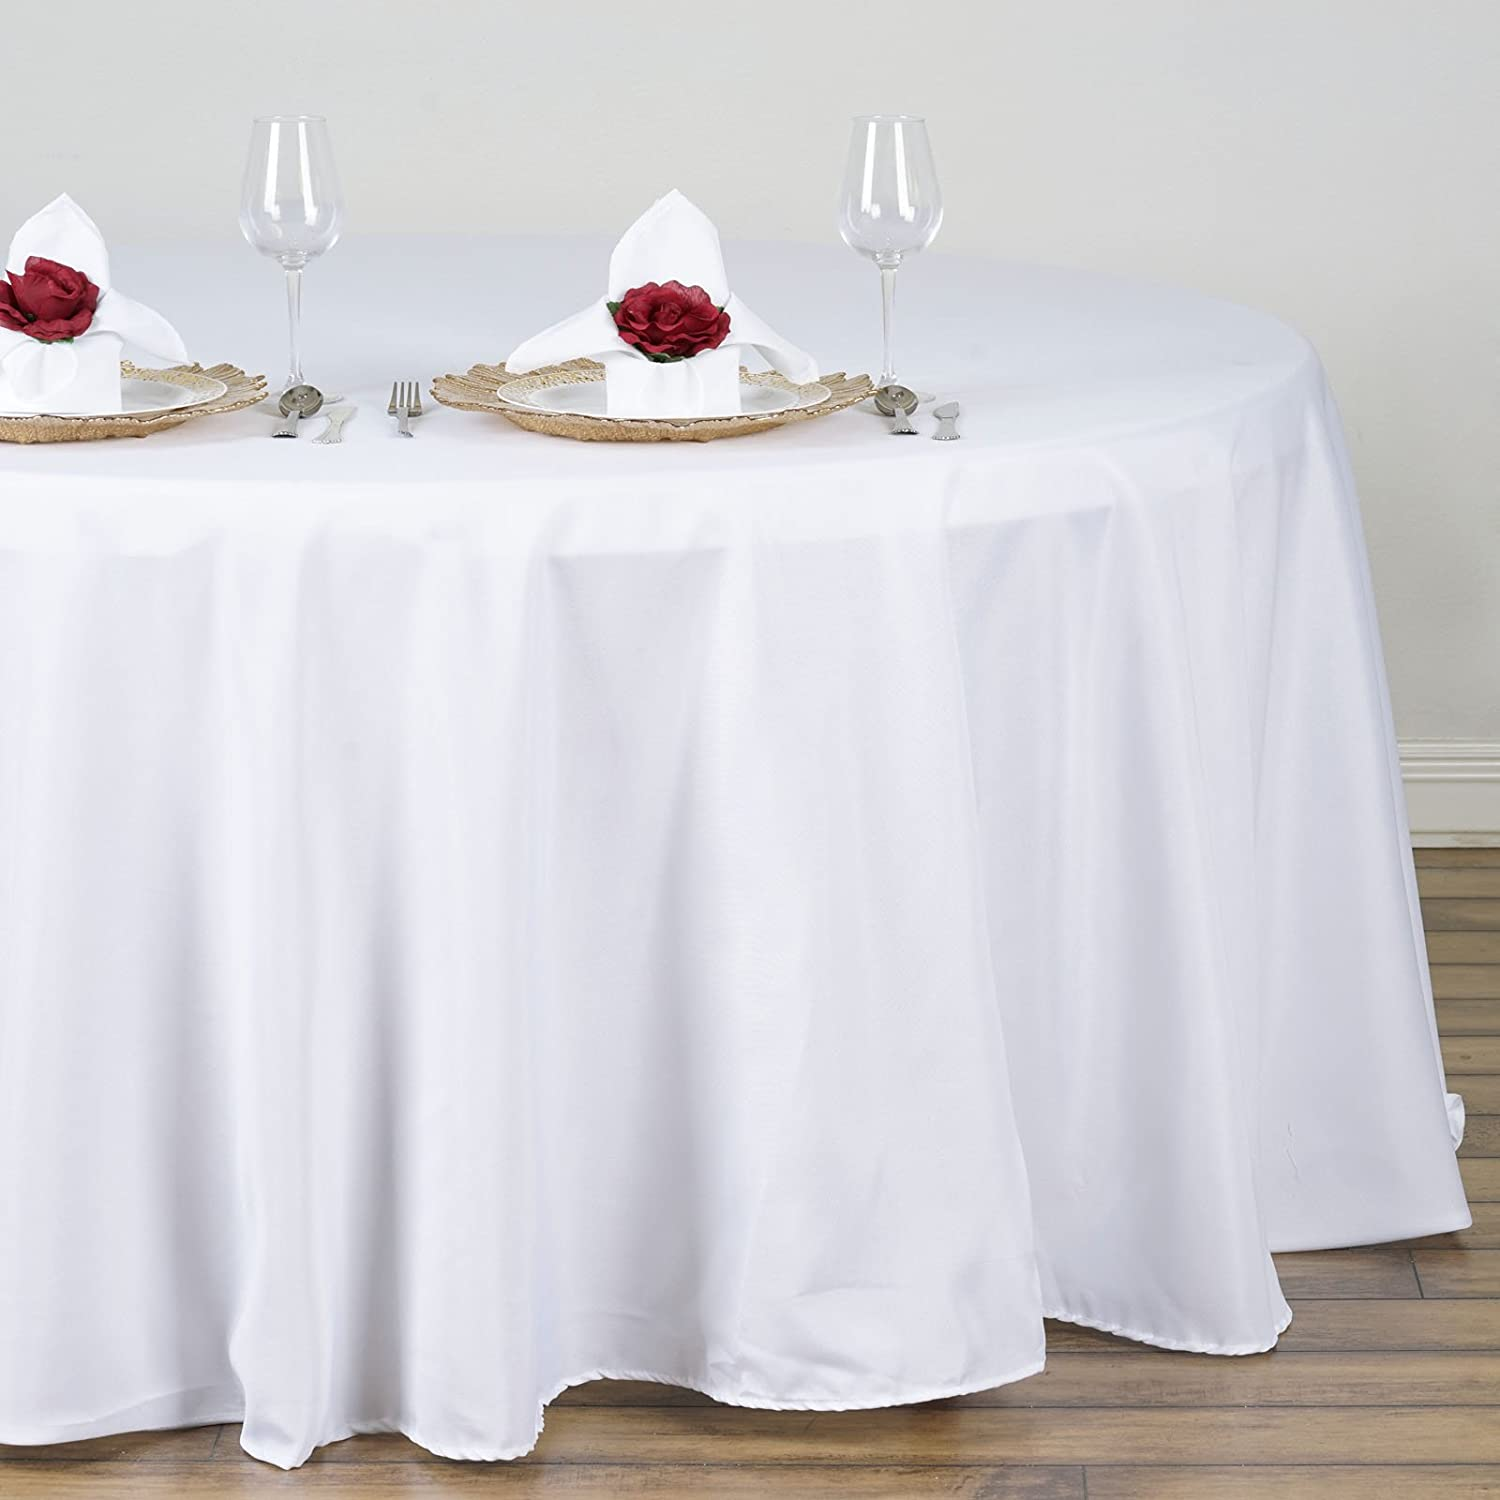 99 Wedding Tablecloth Rentals Toronto Tablecloths Amazon Beige Outdoor Fall Linen For Sale